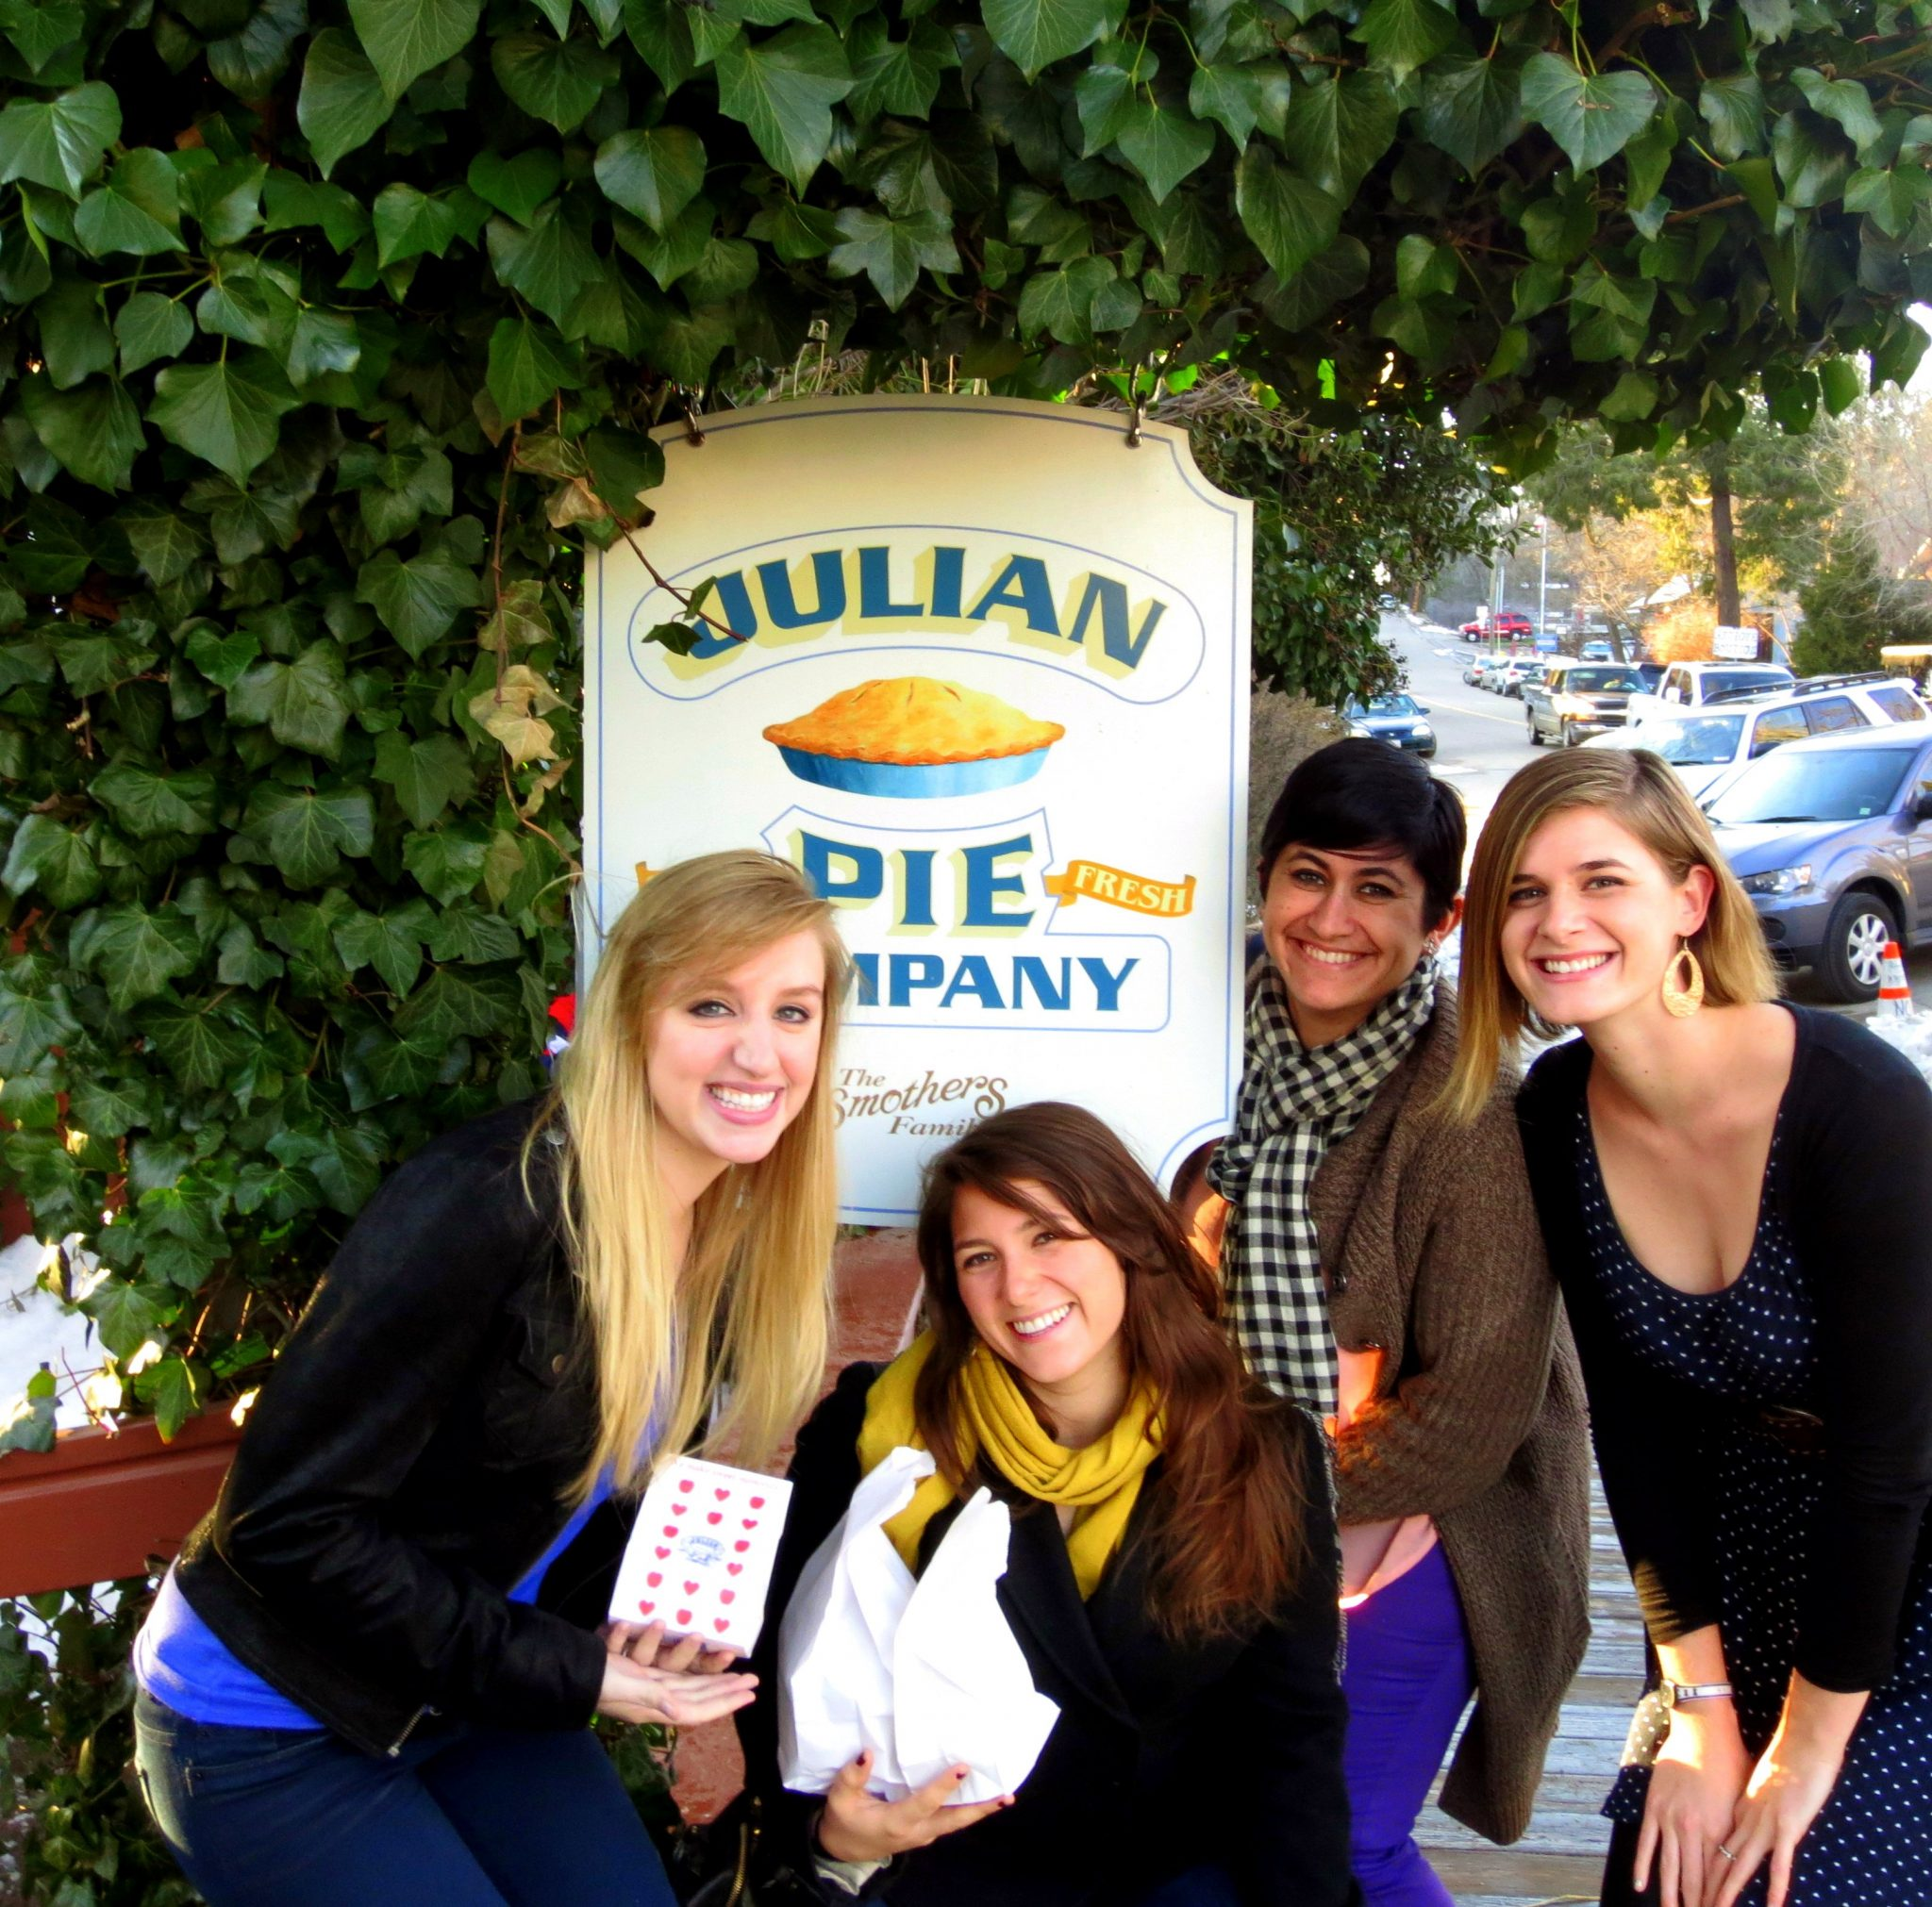 Okay, not technically in San Diego - but a great road trip from the city to taste the best apple pie of your life - Julian Pie Company